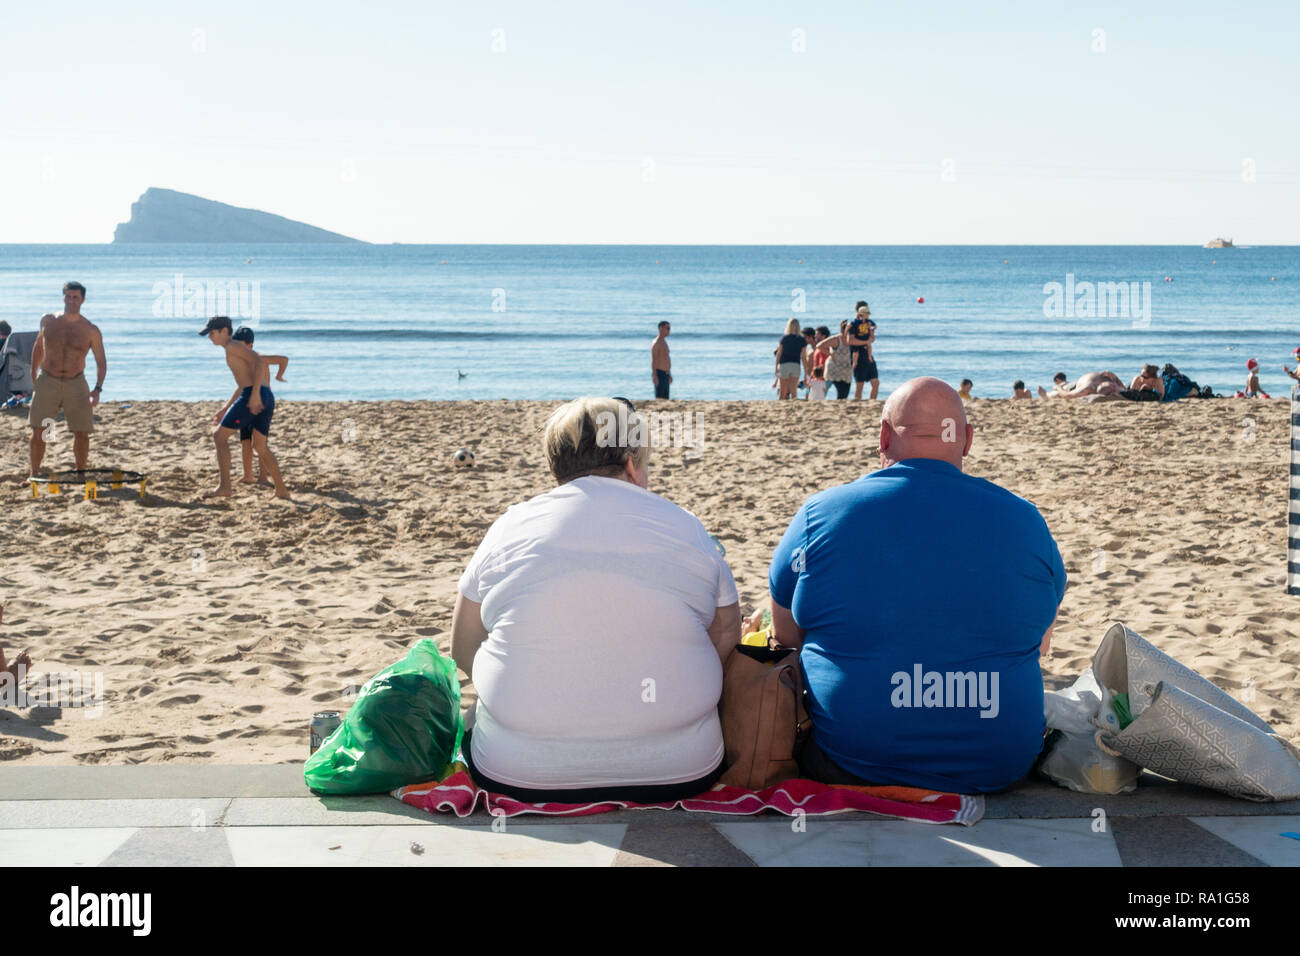 Benidorm, Spain. 30 December 2018. British tourists mix with locals on the beaches and in the bars and restaurants as they escape the cold British weather and head south to Spain. High temperatures meant that the beaches were busy from early morning with families enjoying the calm sea and temps of about 17 Celsius. Obese man and woman sitting facing the sea in this popular Spanish resort. Credit: Mick Flynn/Alamy Live News Stock Photo